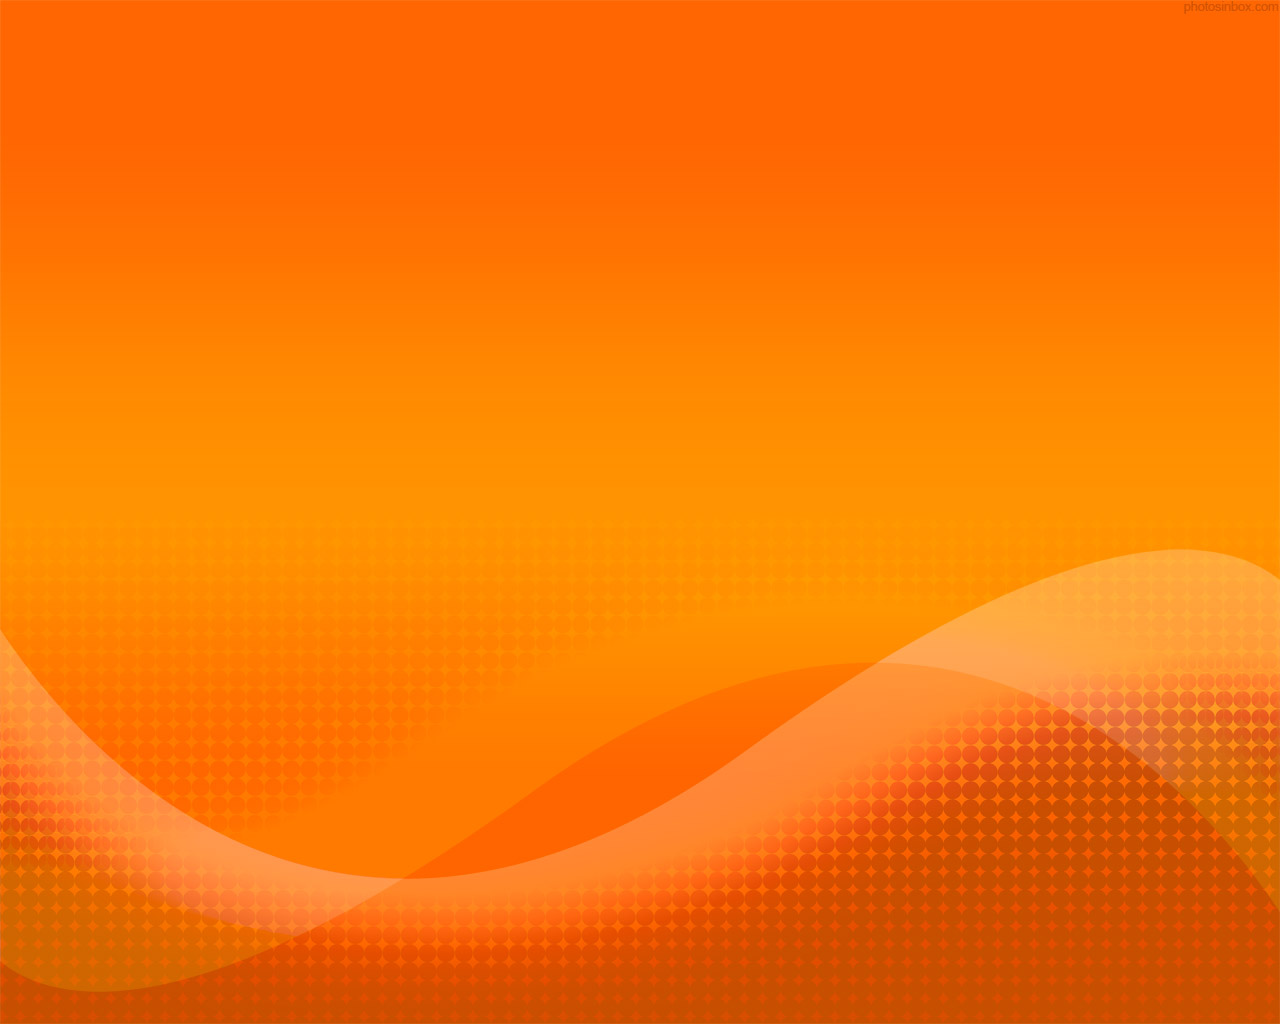 halftone-orange-abstract-backgrounds-wallpapers-ppt-template